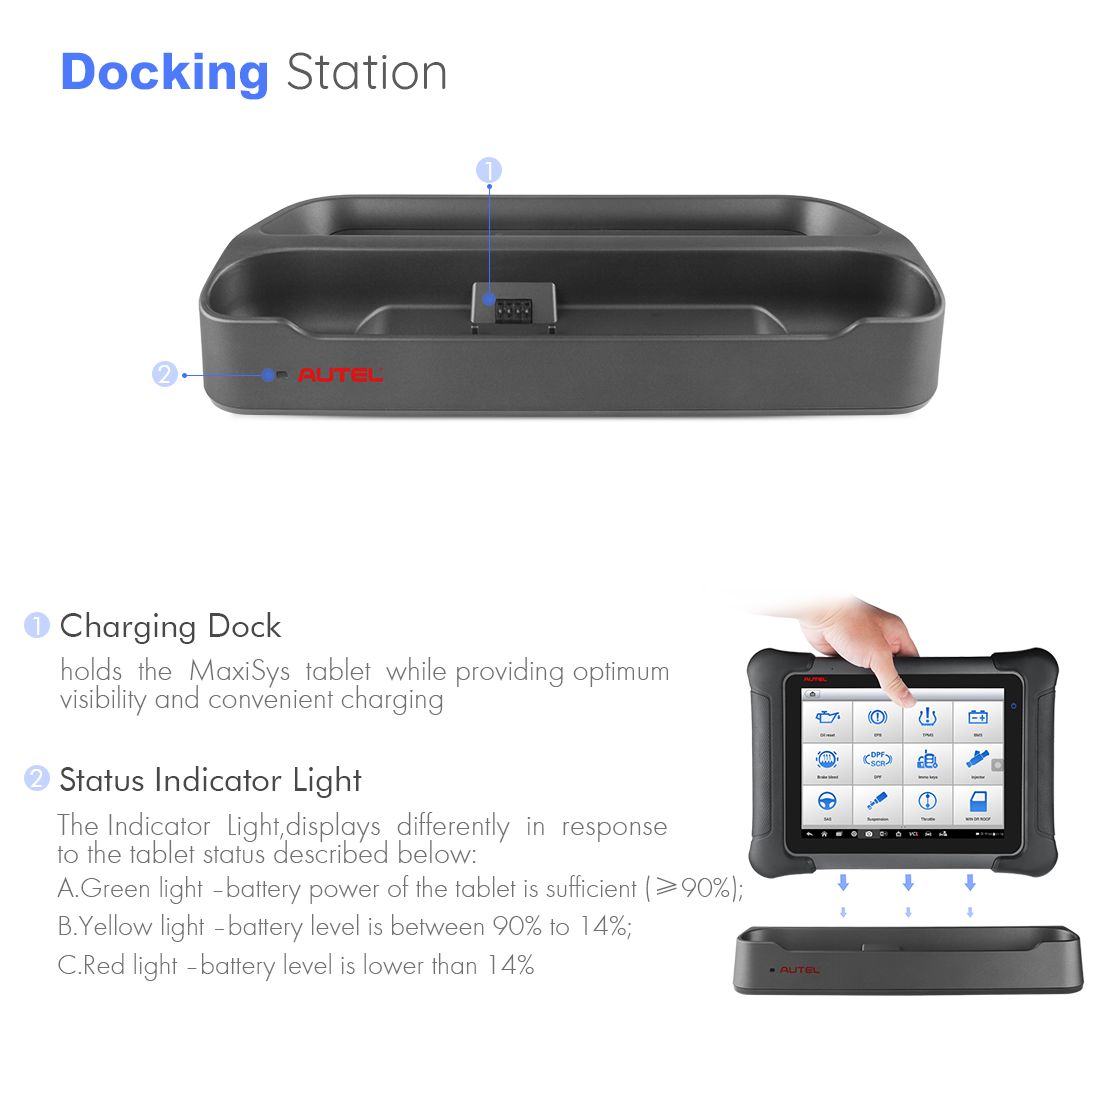 maxisys elite comes with docking station